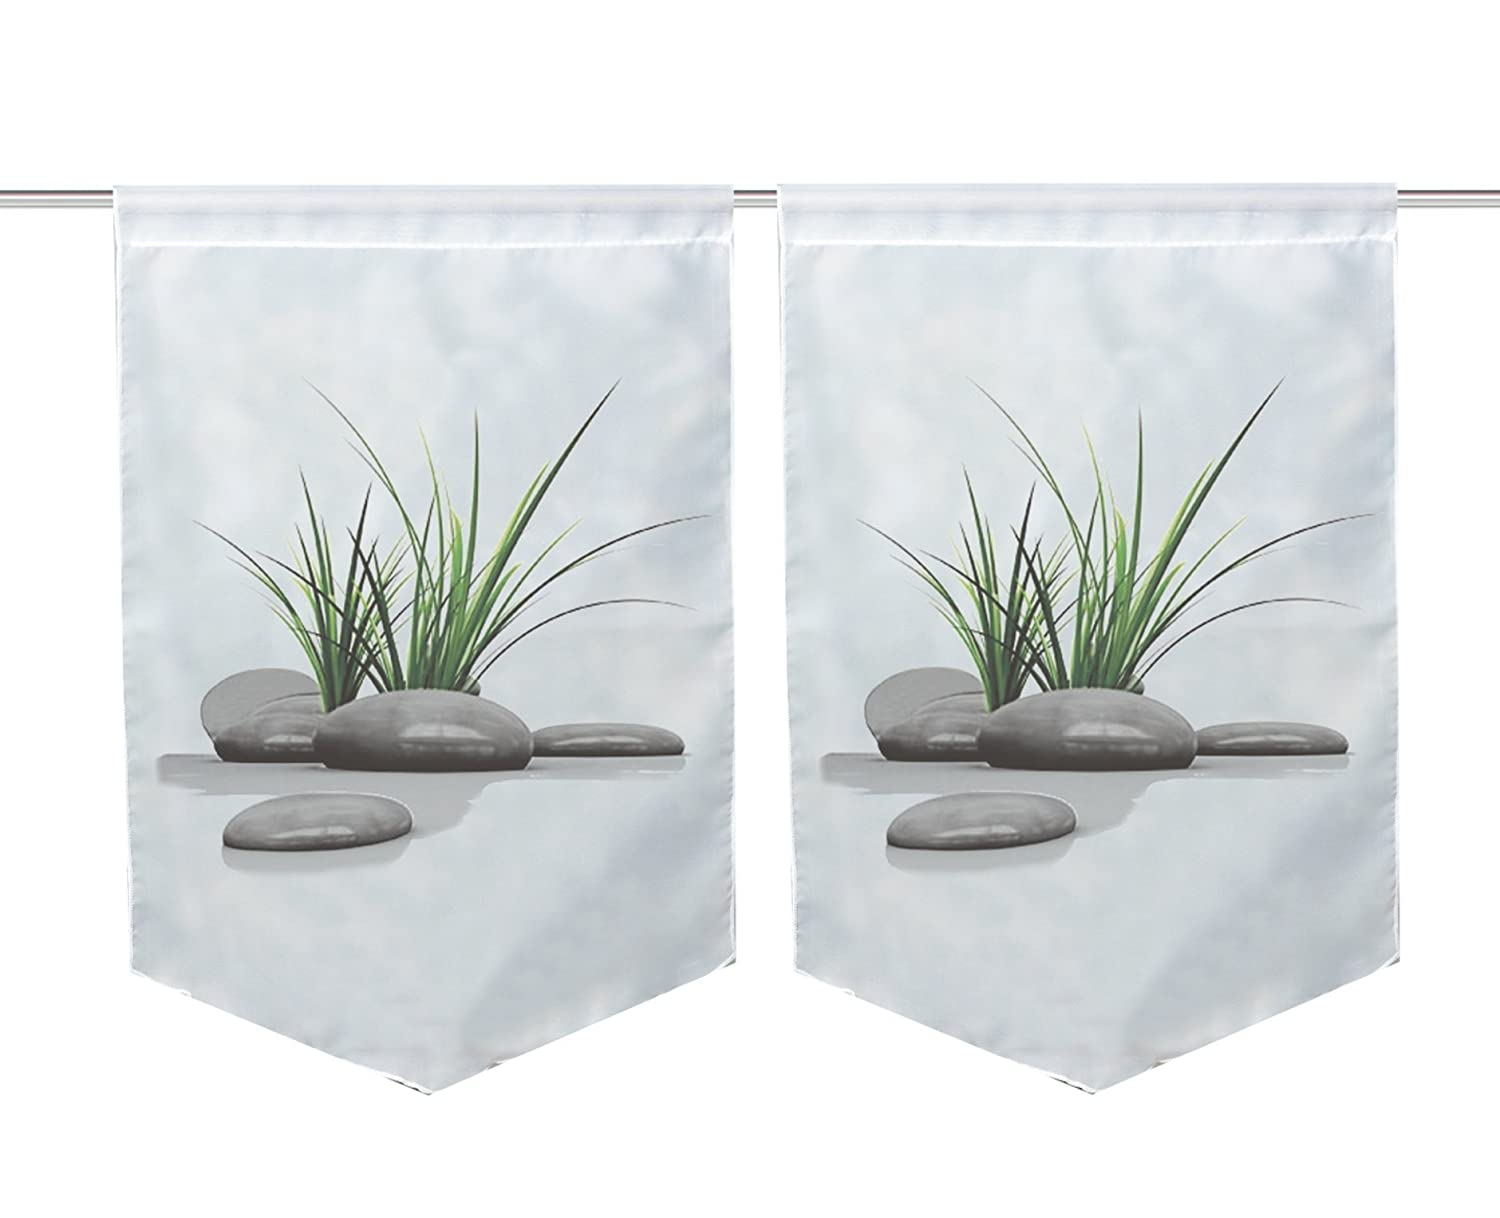 FASHION FOR HOME Home Fashion 55933368Digital Print Window Decoration Voile 2Pack, Green, 45x 30x 45cm 55933-368